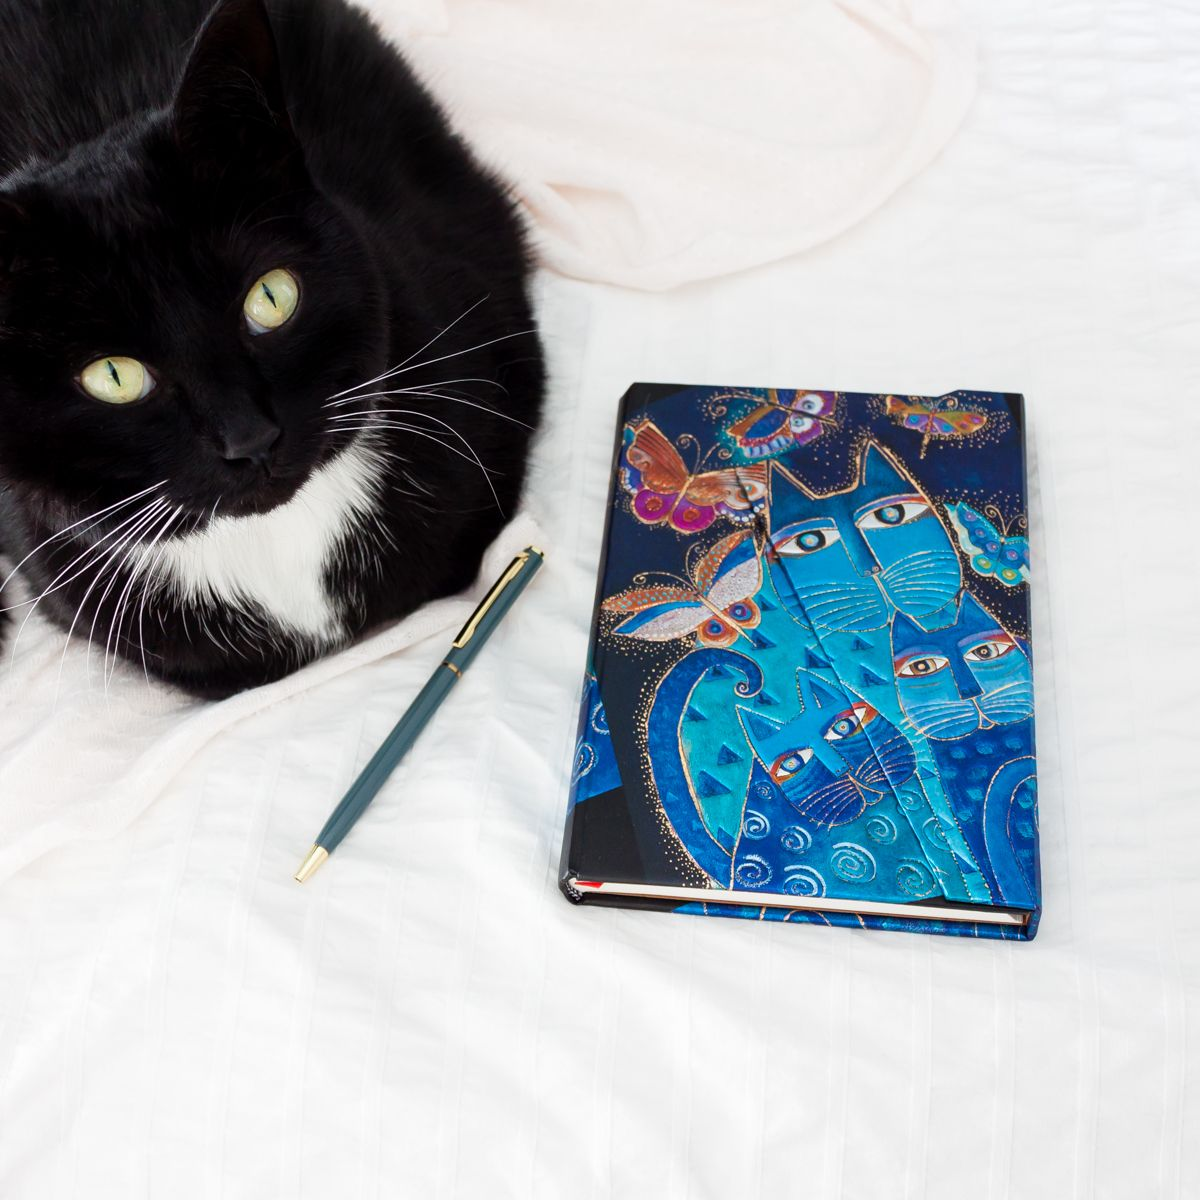 We can't imagine a better writing partner for